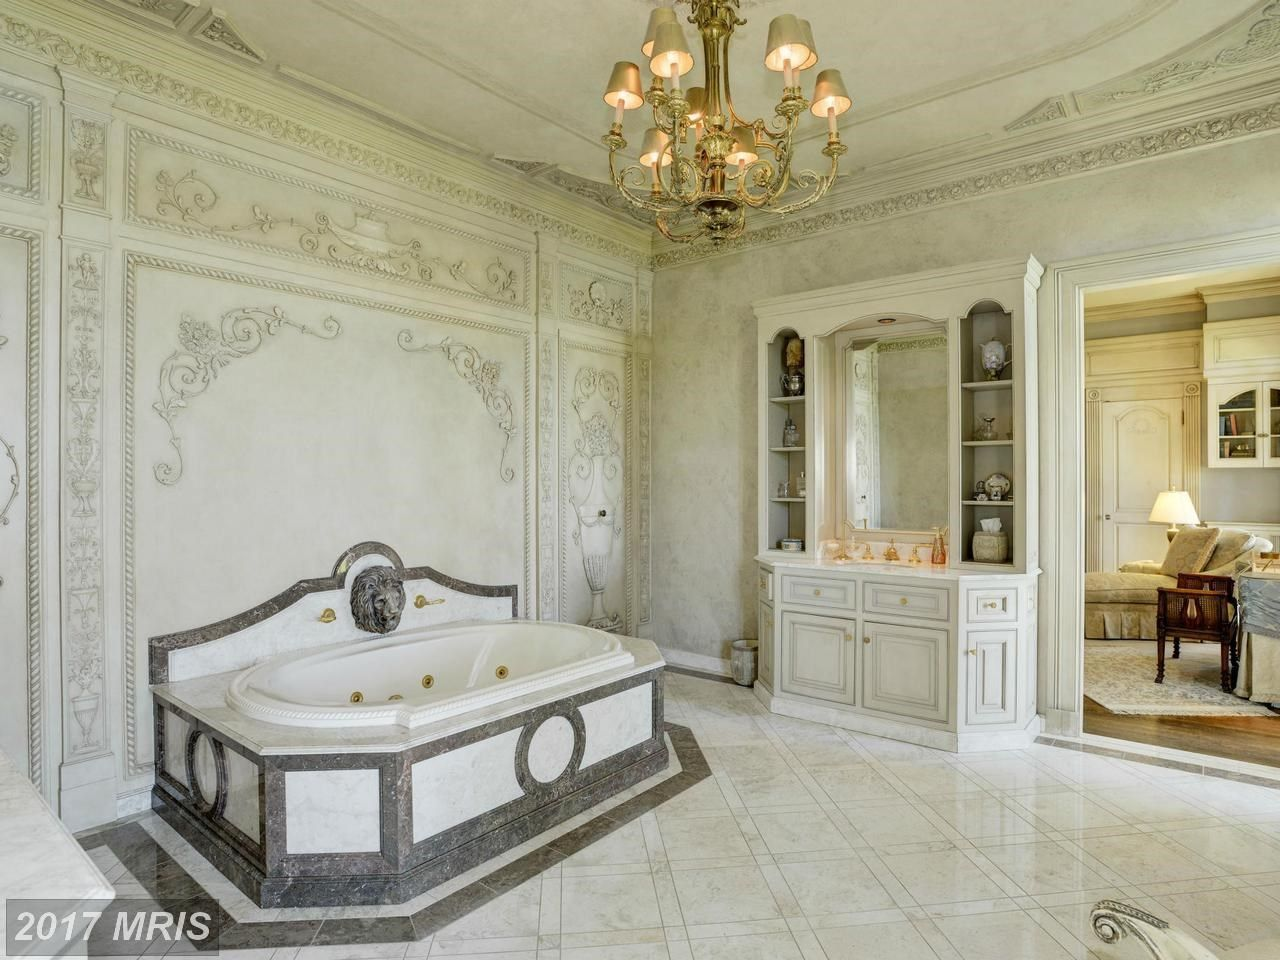 Pin on Elegant Rooms in Homes for Sale